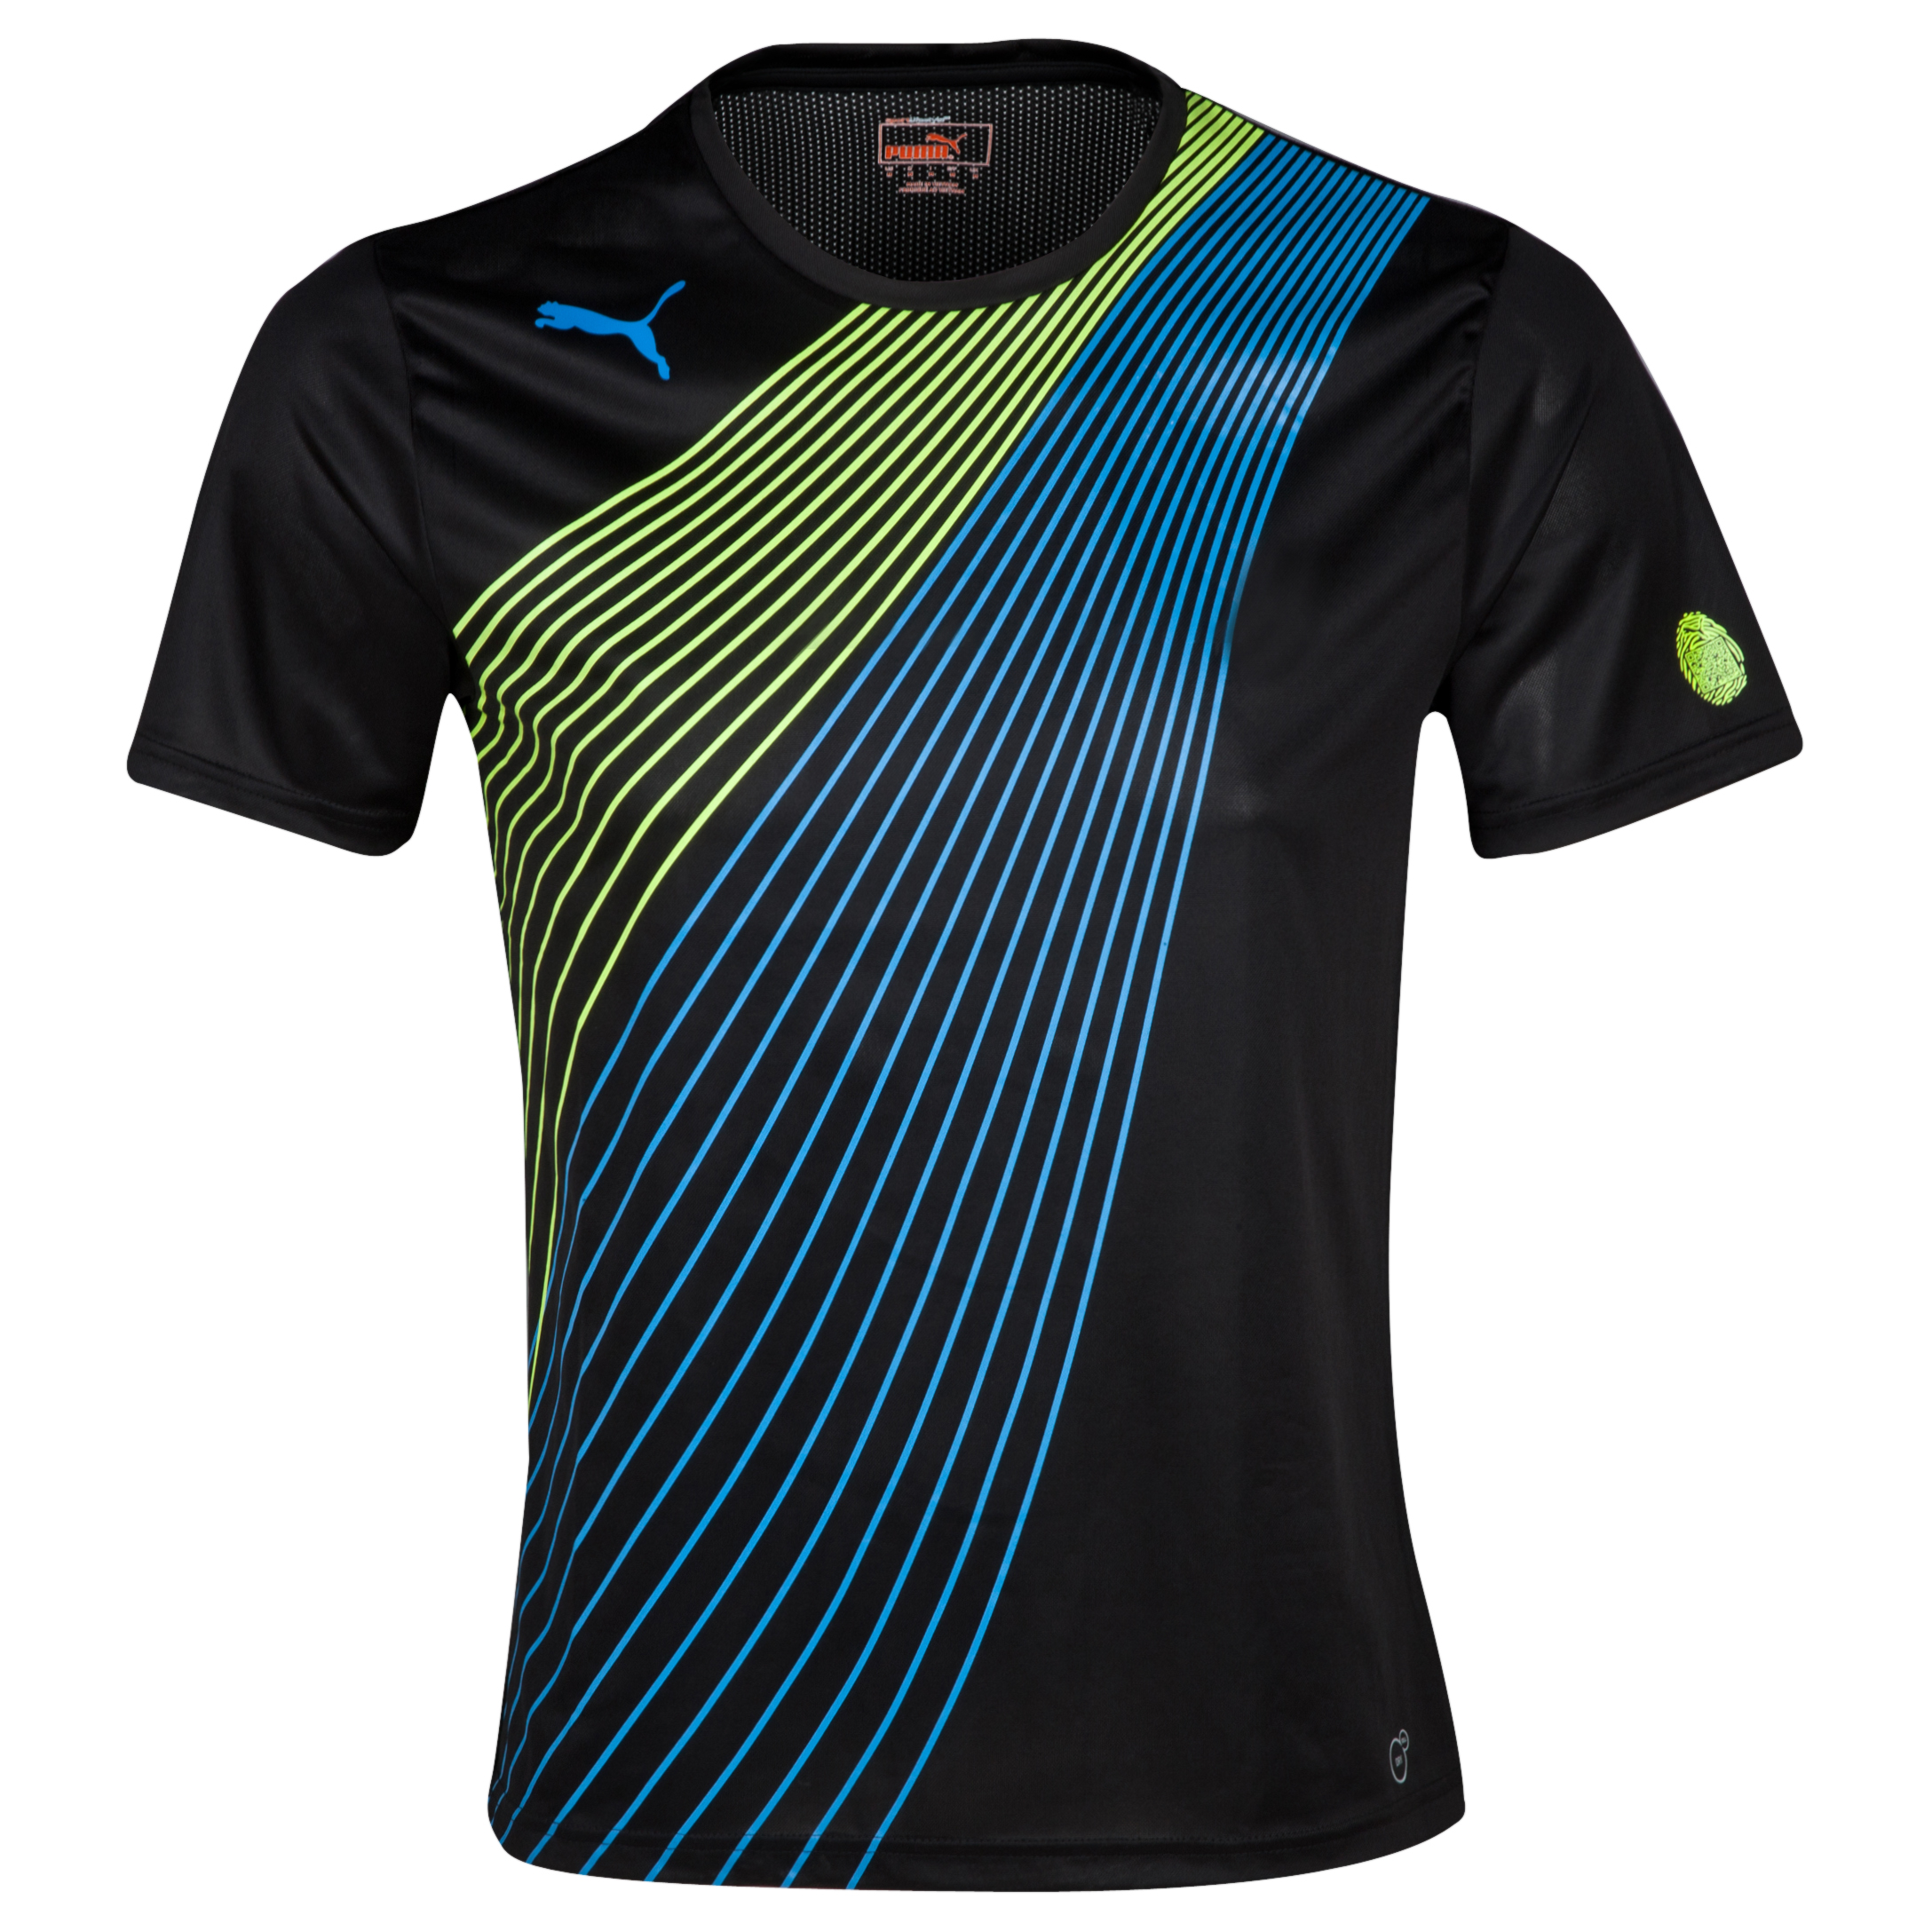 Puma evoSPEED Training T-Shirt Black